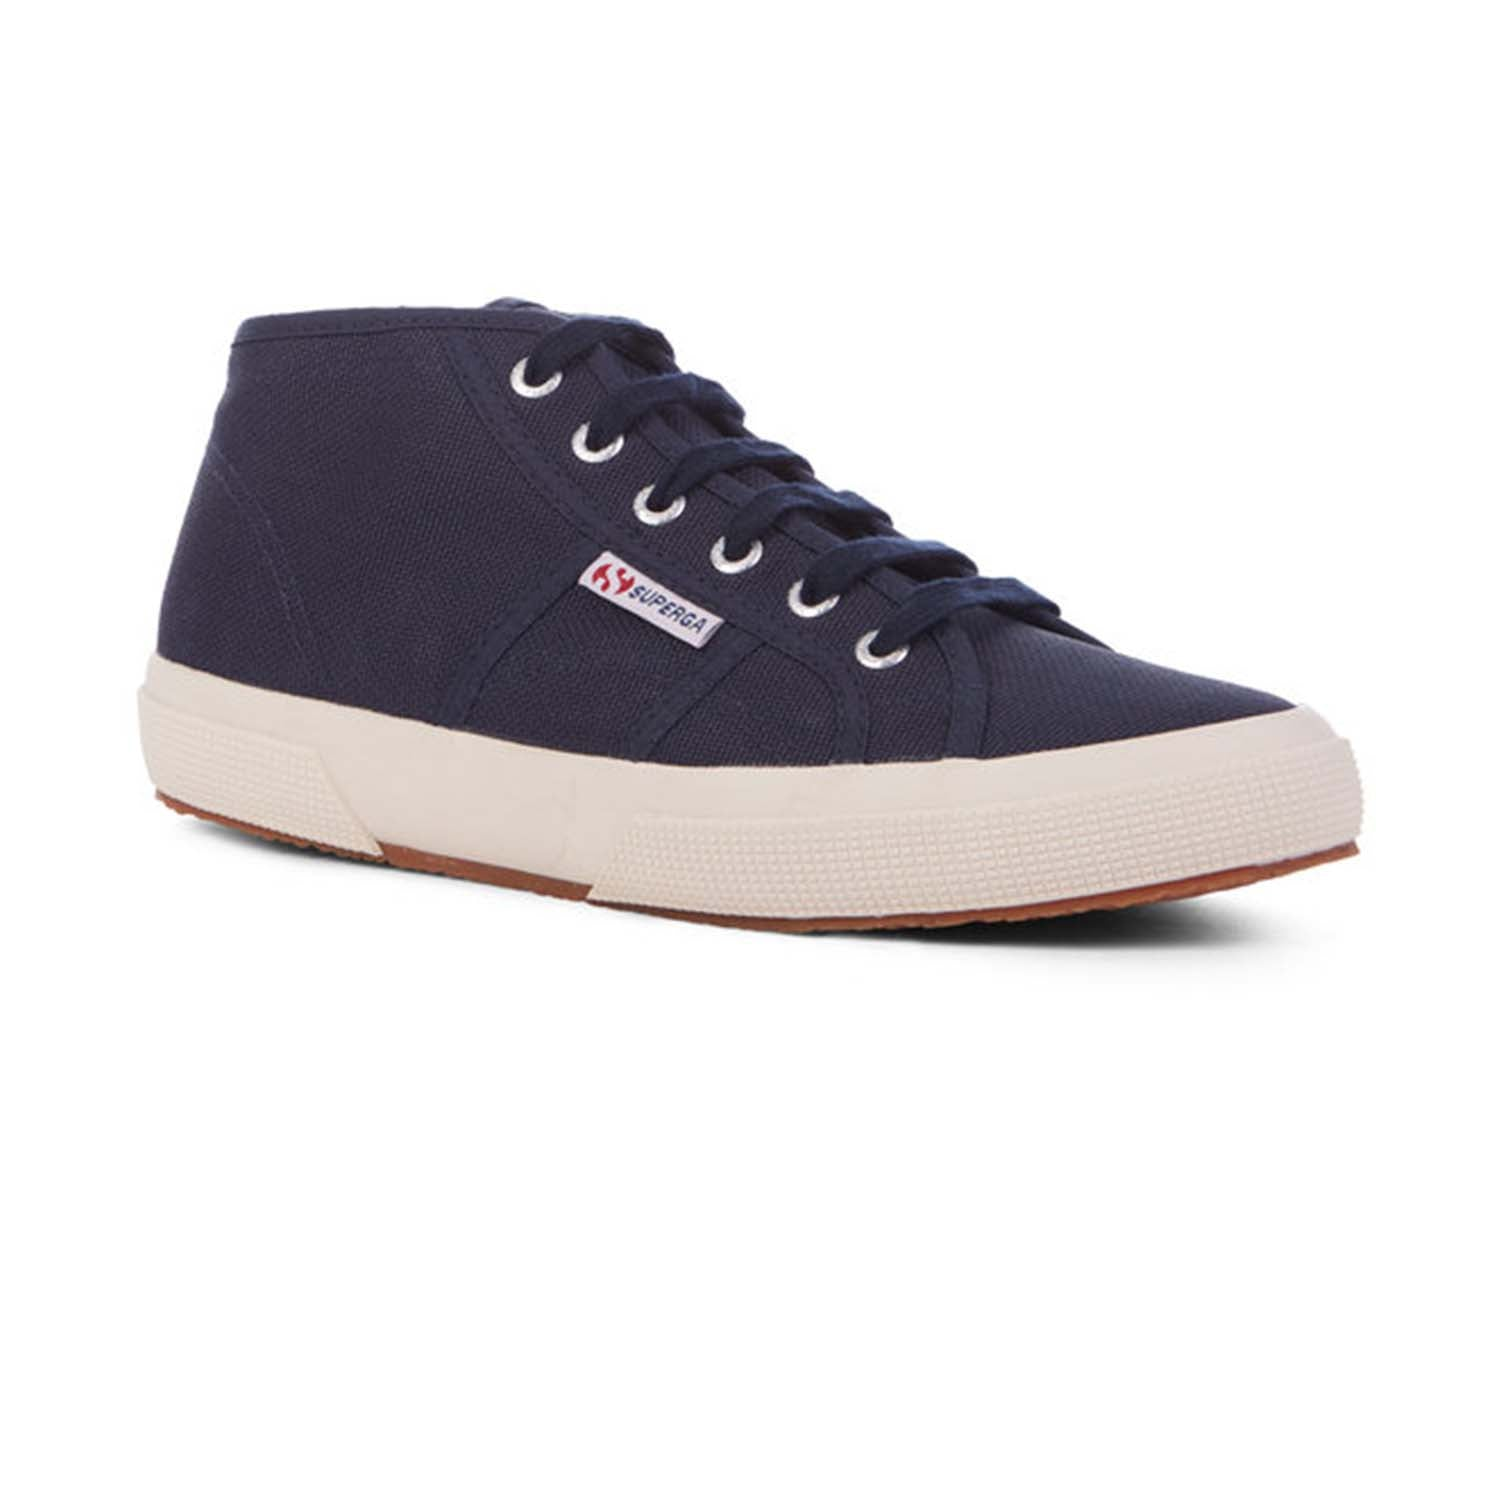 Superga Cotu Mid Top Canvas Lace up Trainer